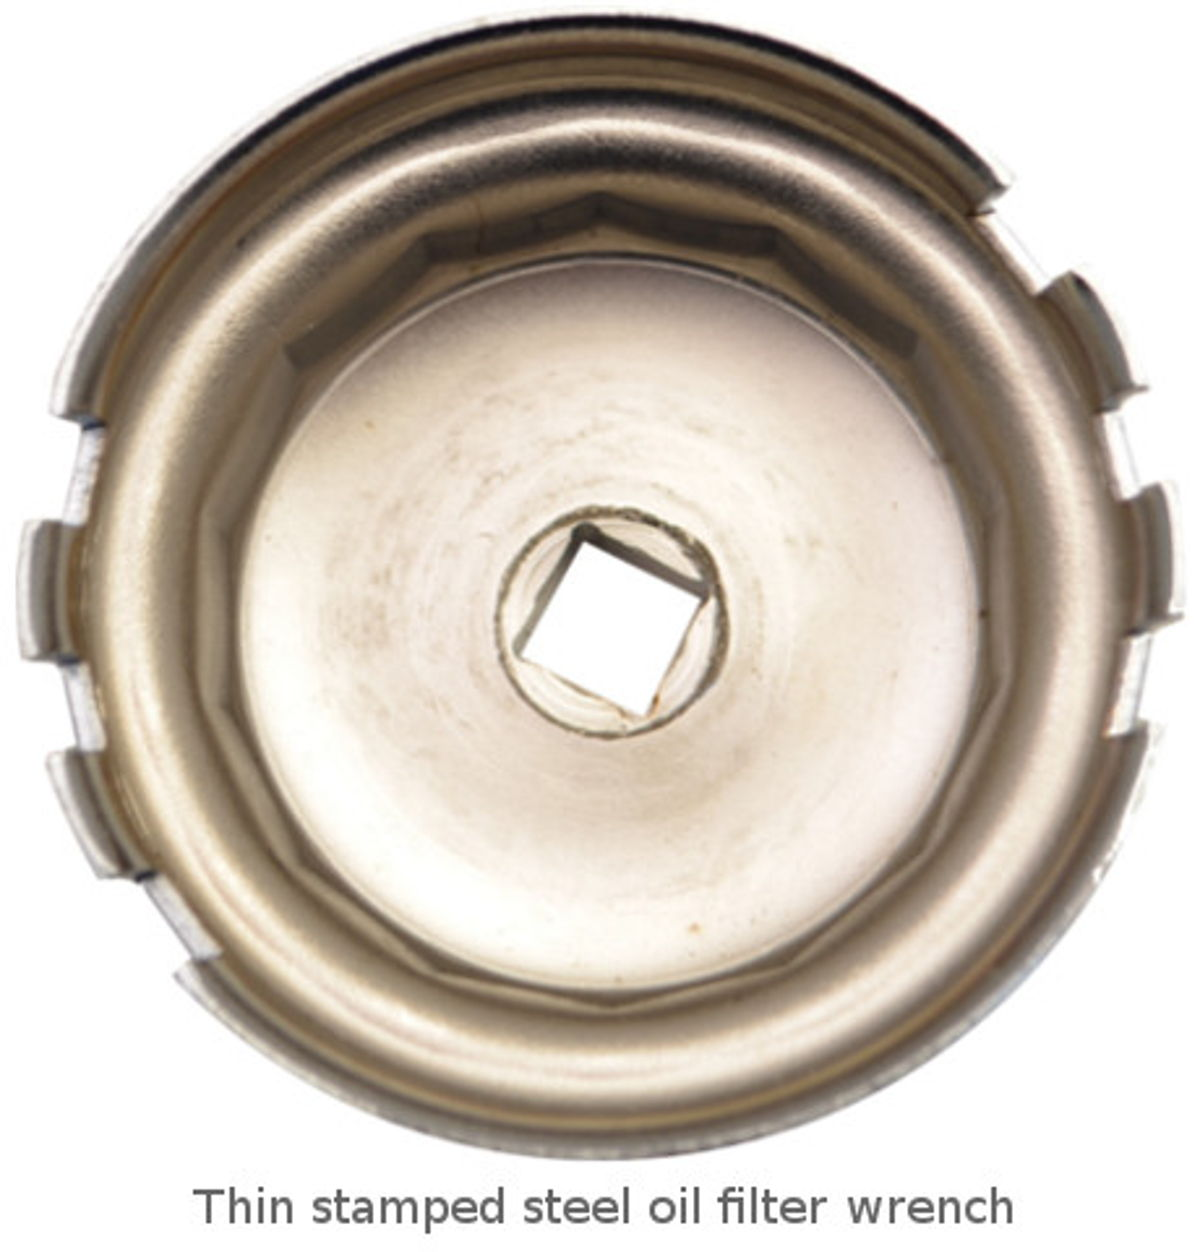 Example of a stamped steel oil filter wrench